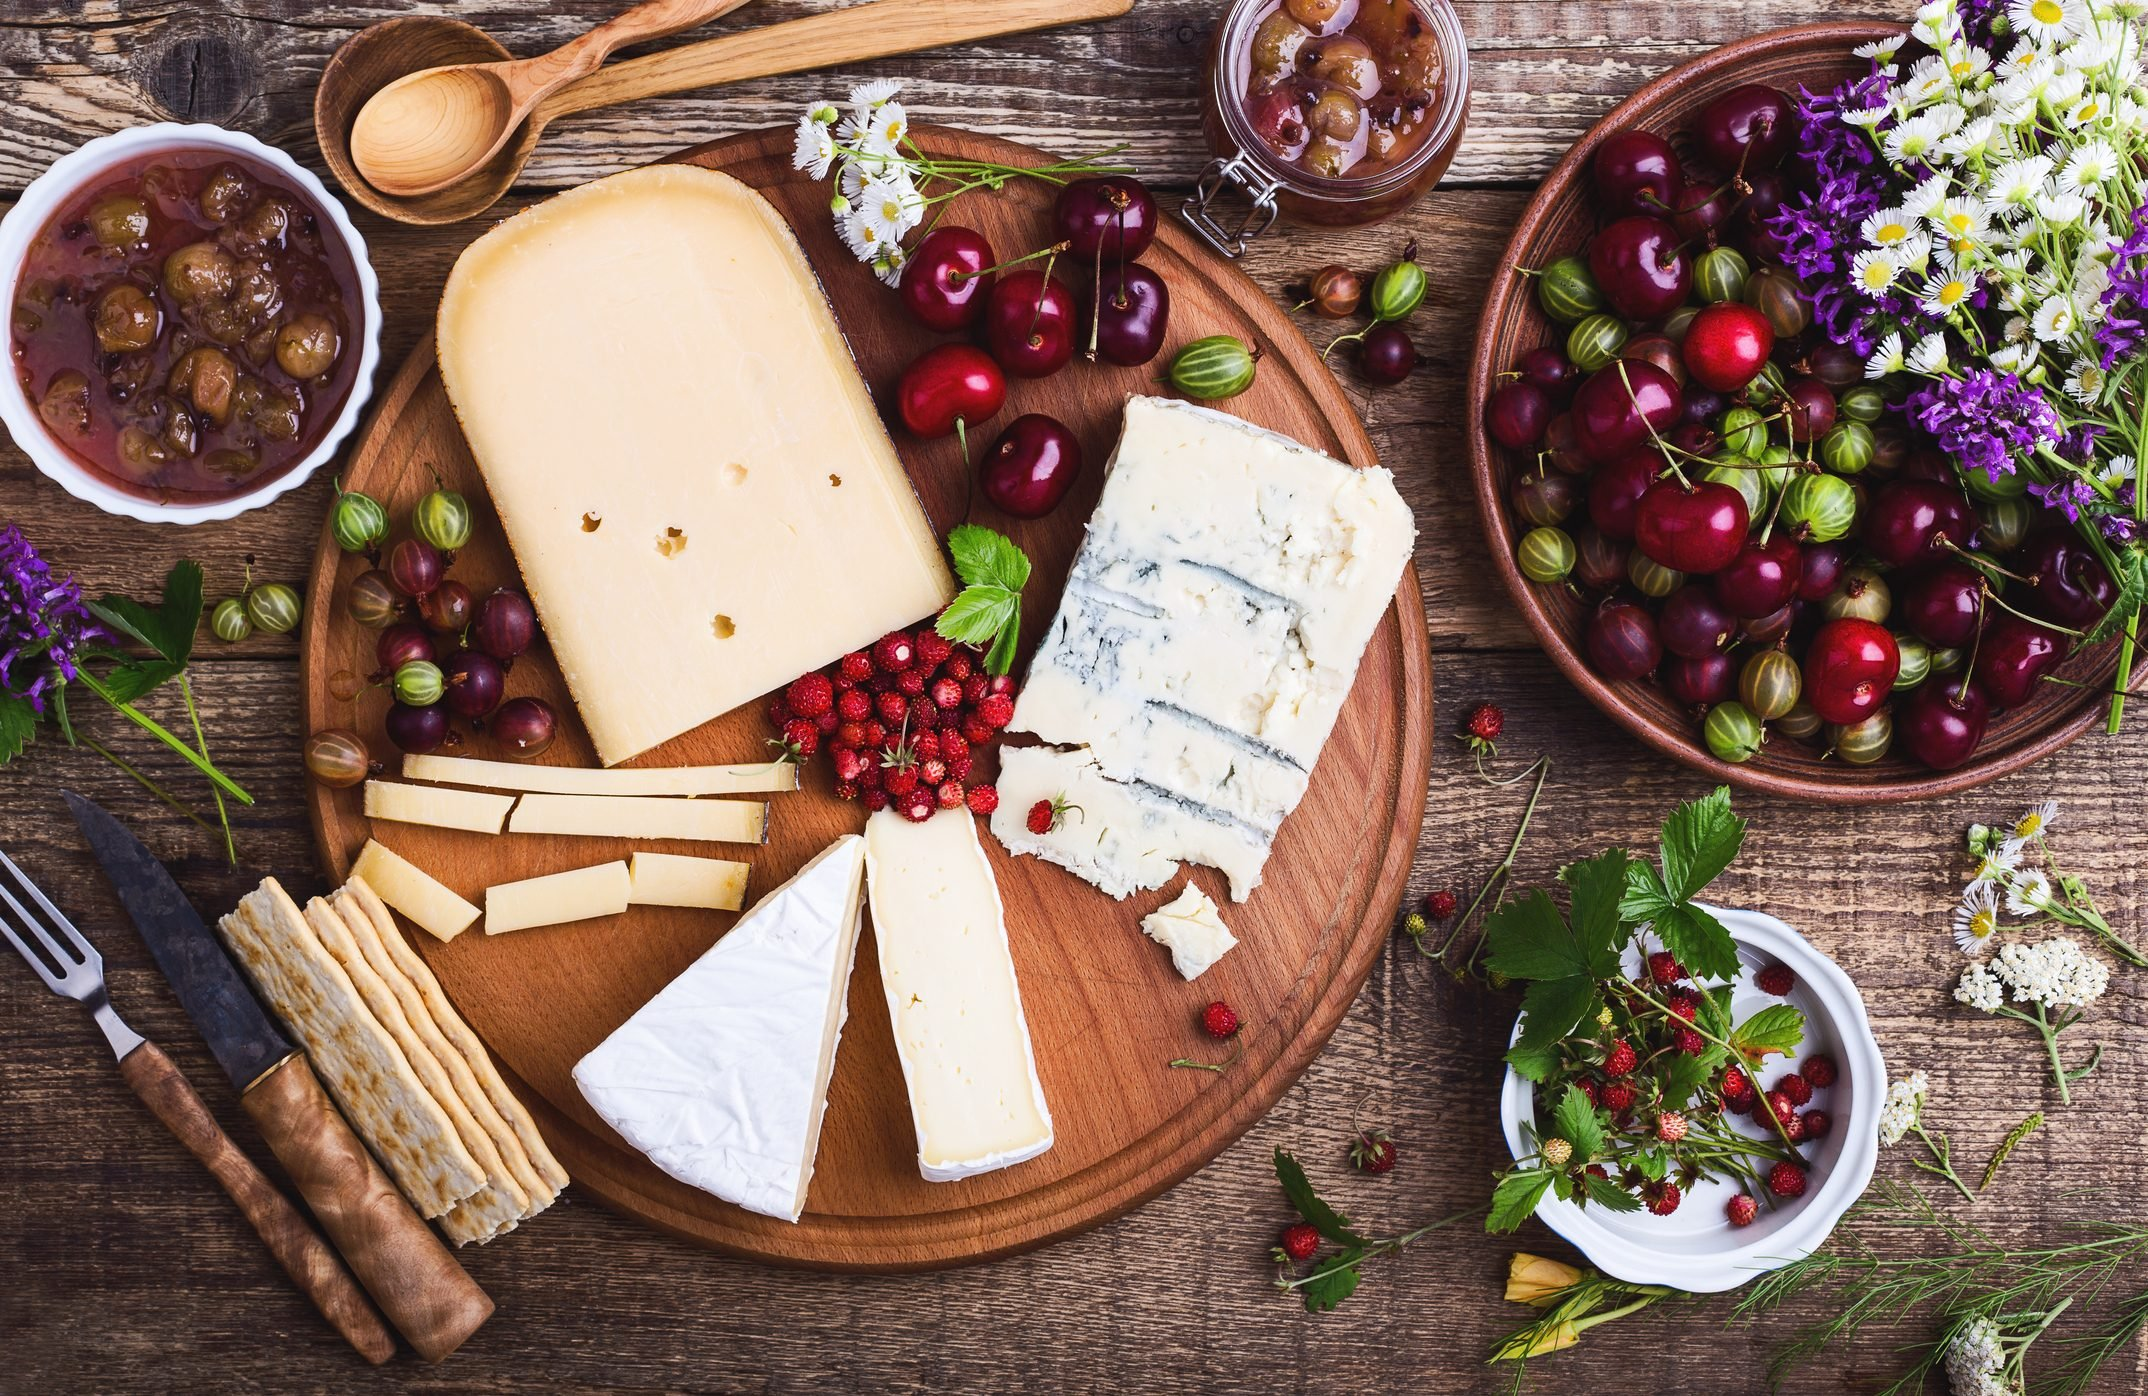 Cheese platter with fresh colorful summer berries